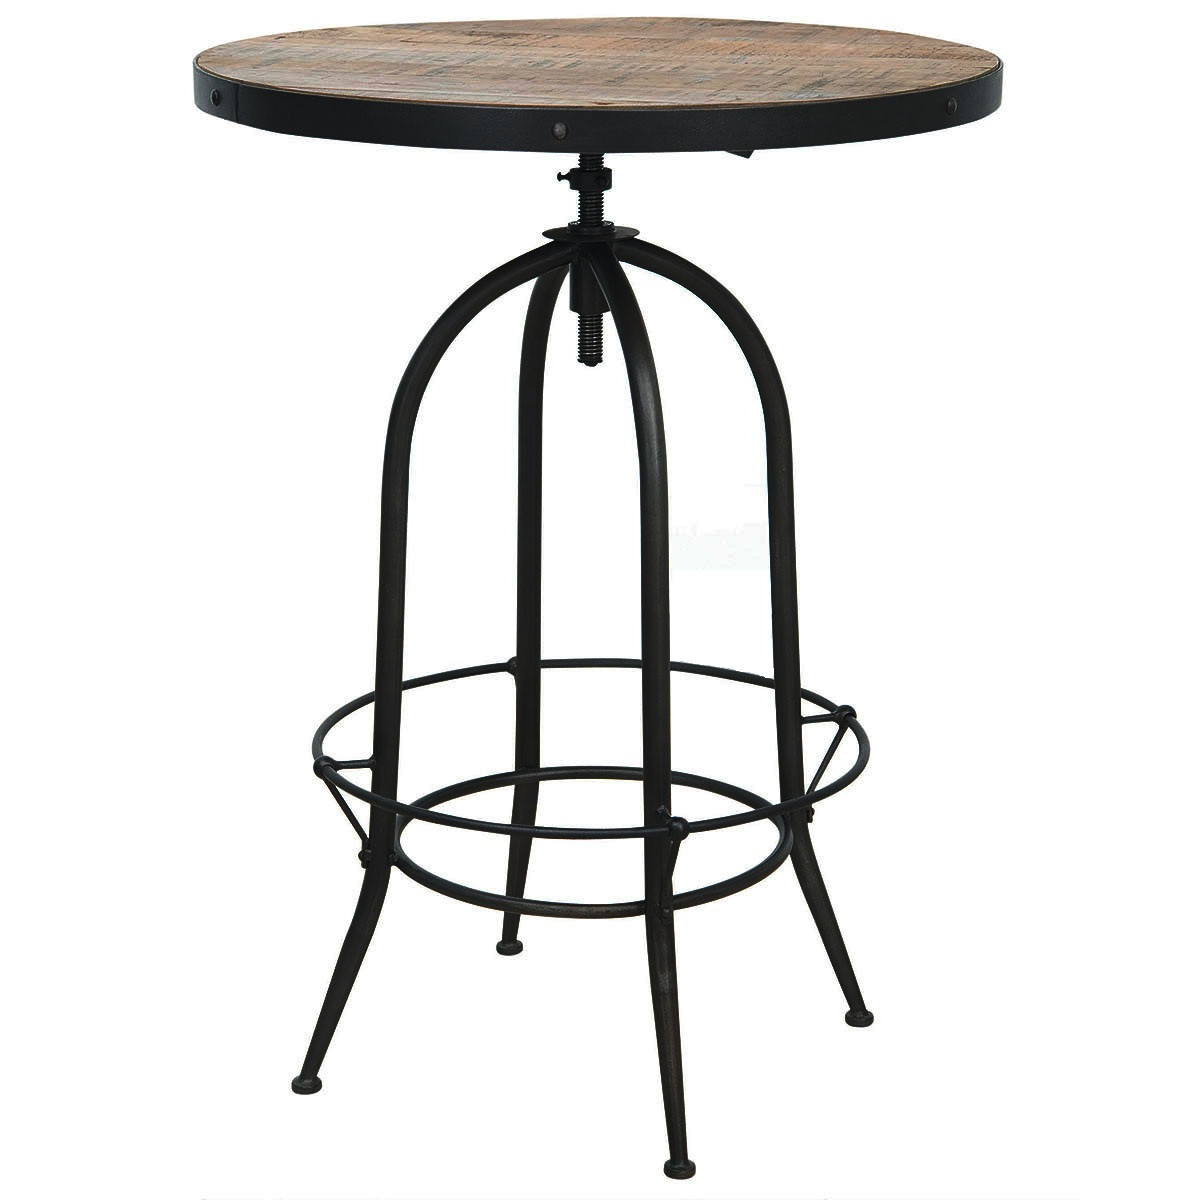 industria adjustable bristol pub table   zin home - industrial adjustable bristol pub table